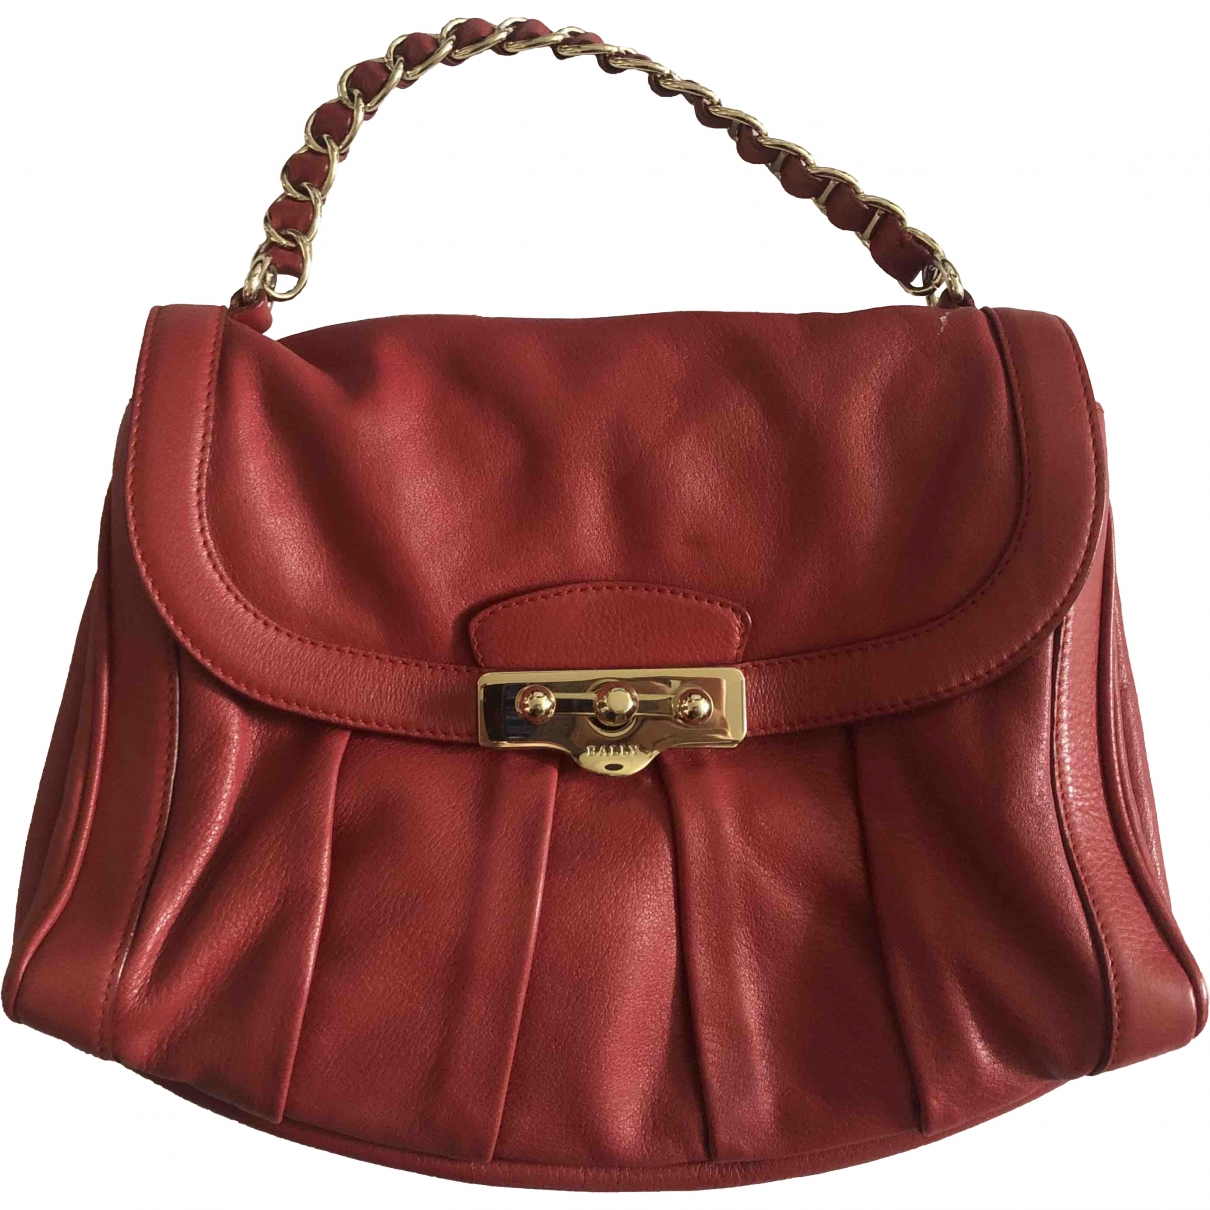 Bally \N Red Leather handbag for Women \N